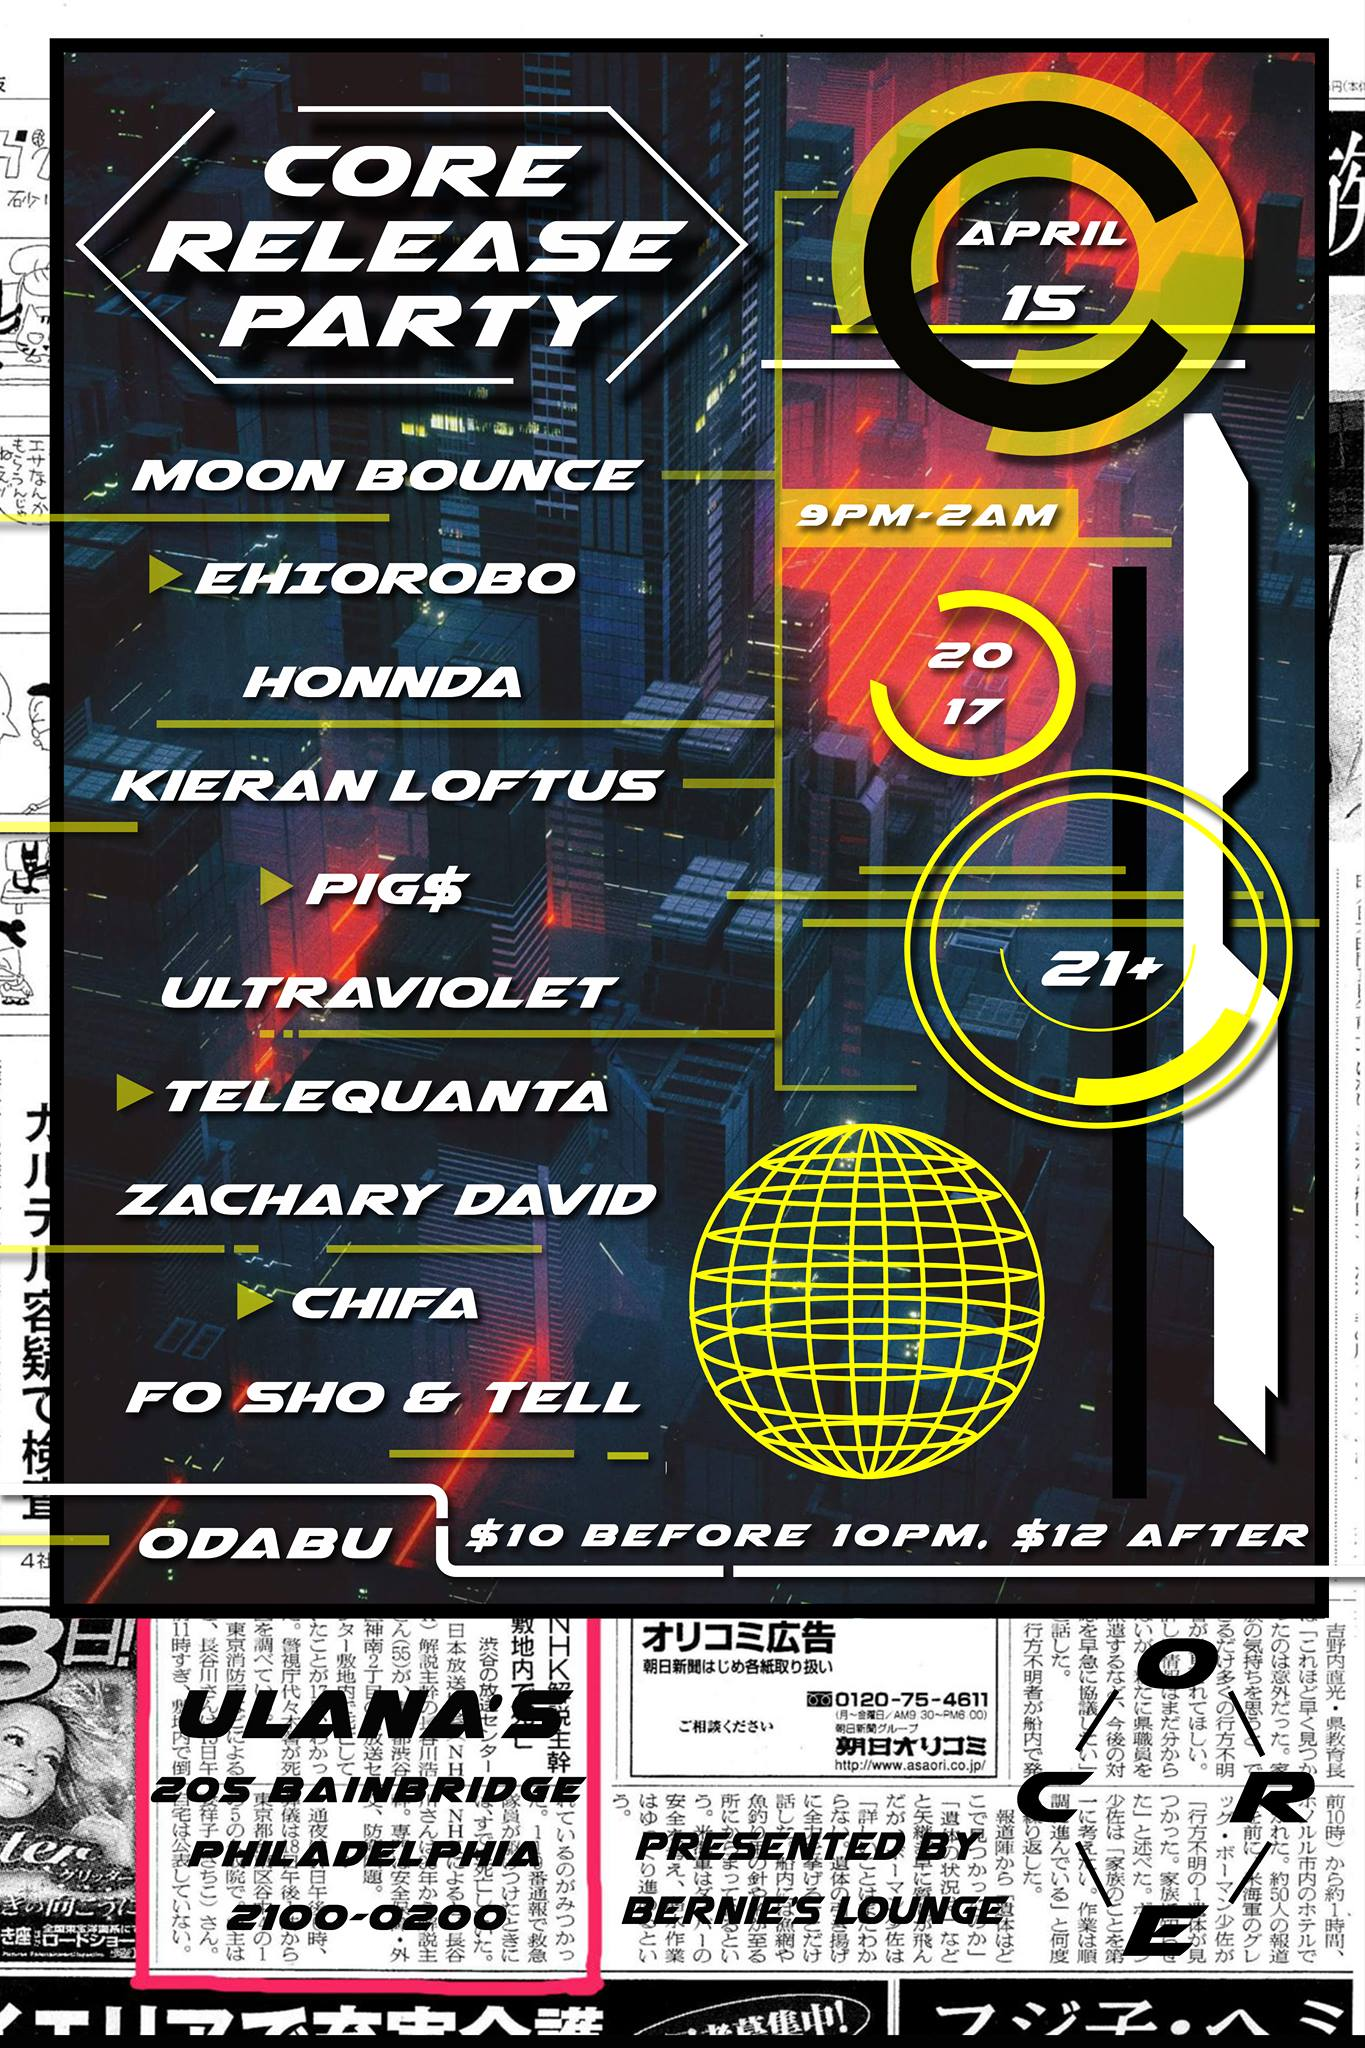 April 15, Philadelphia - Bernie's Lounge. Honnda with Moon Bounce, ehiorobo, Kieran Loftus, Telequanta, Zachary David, pig$, Ultraviolet, Fo Sho & Tell, Odabu